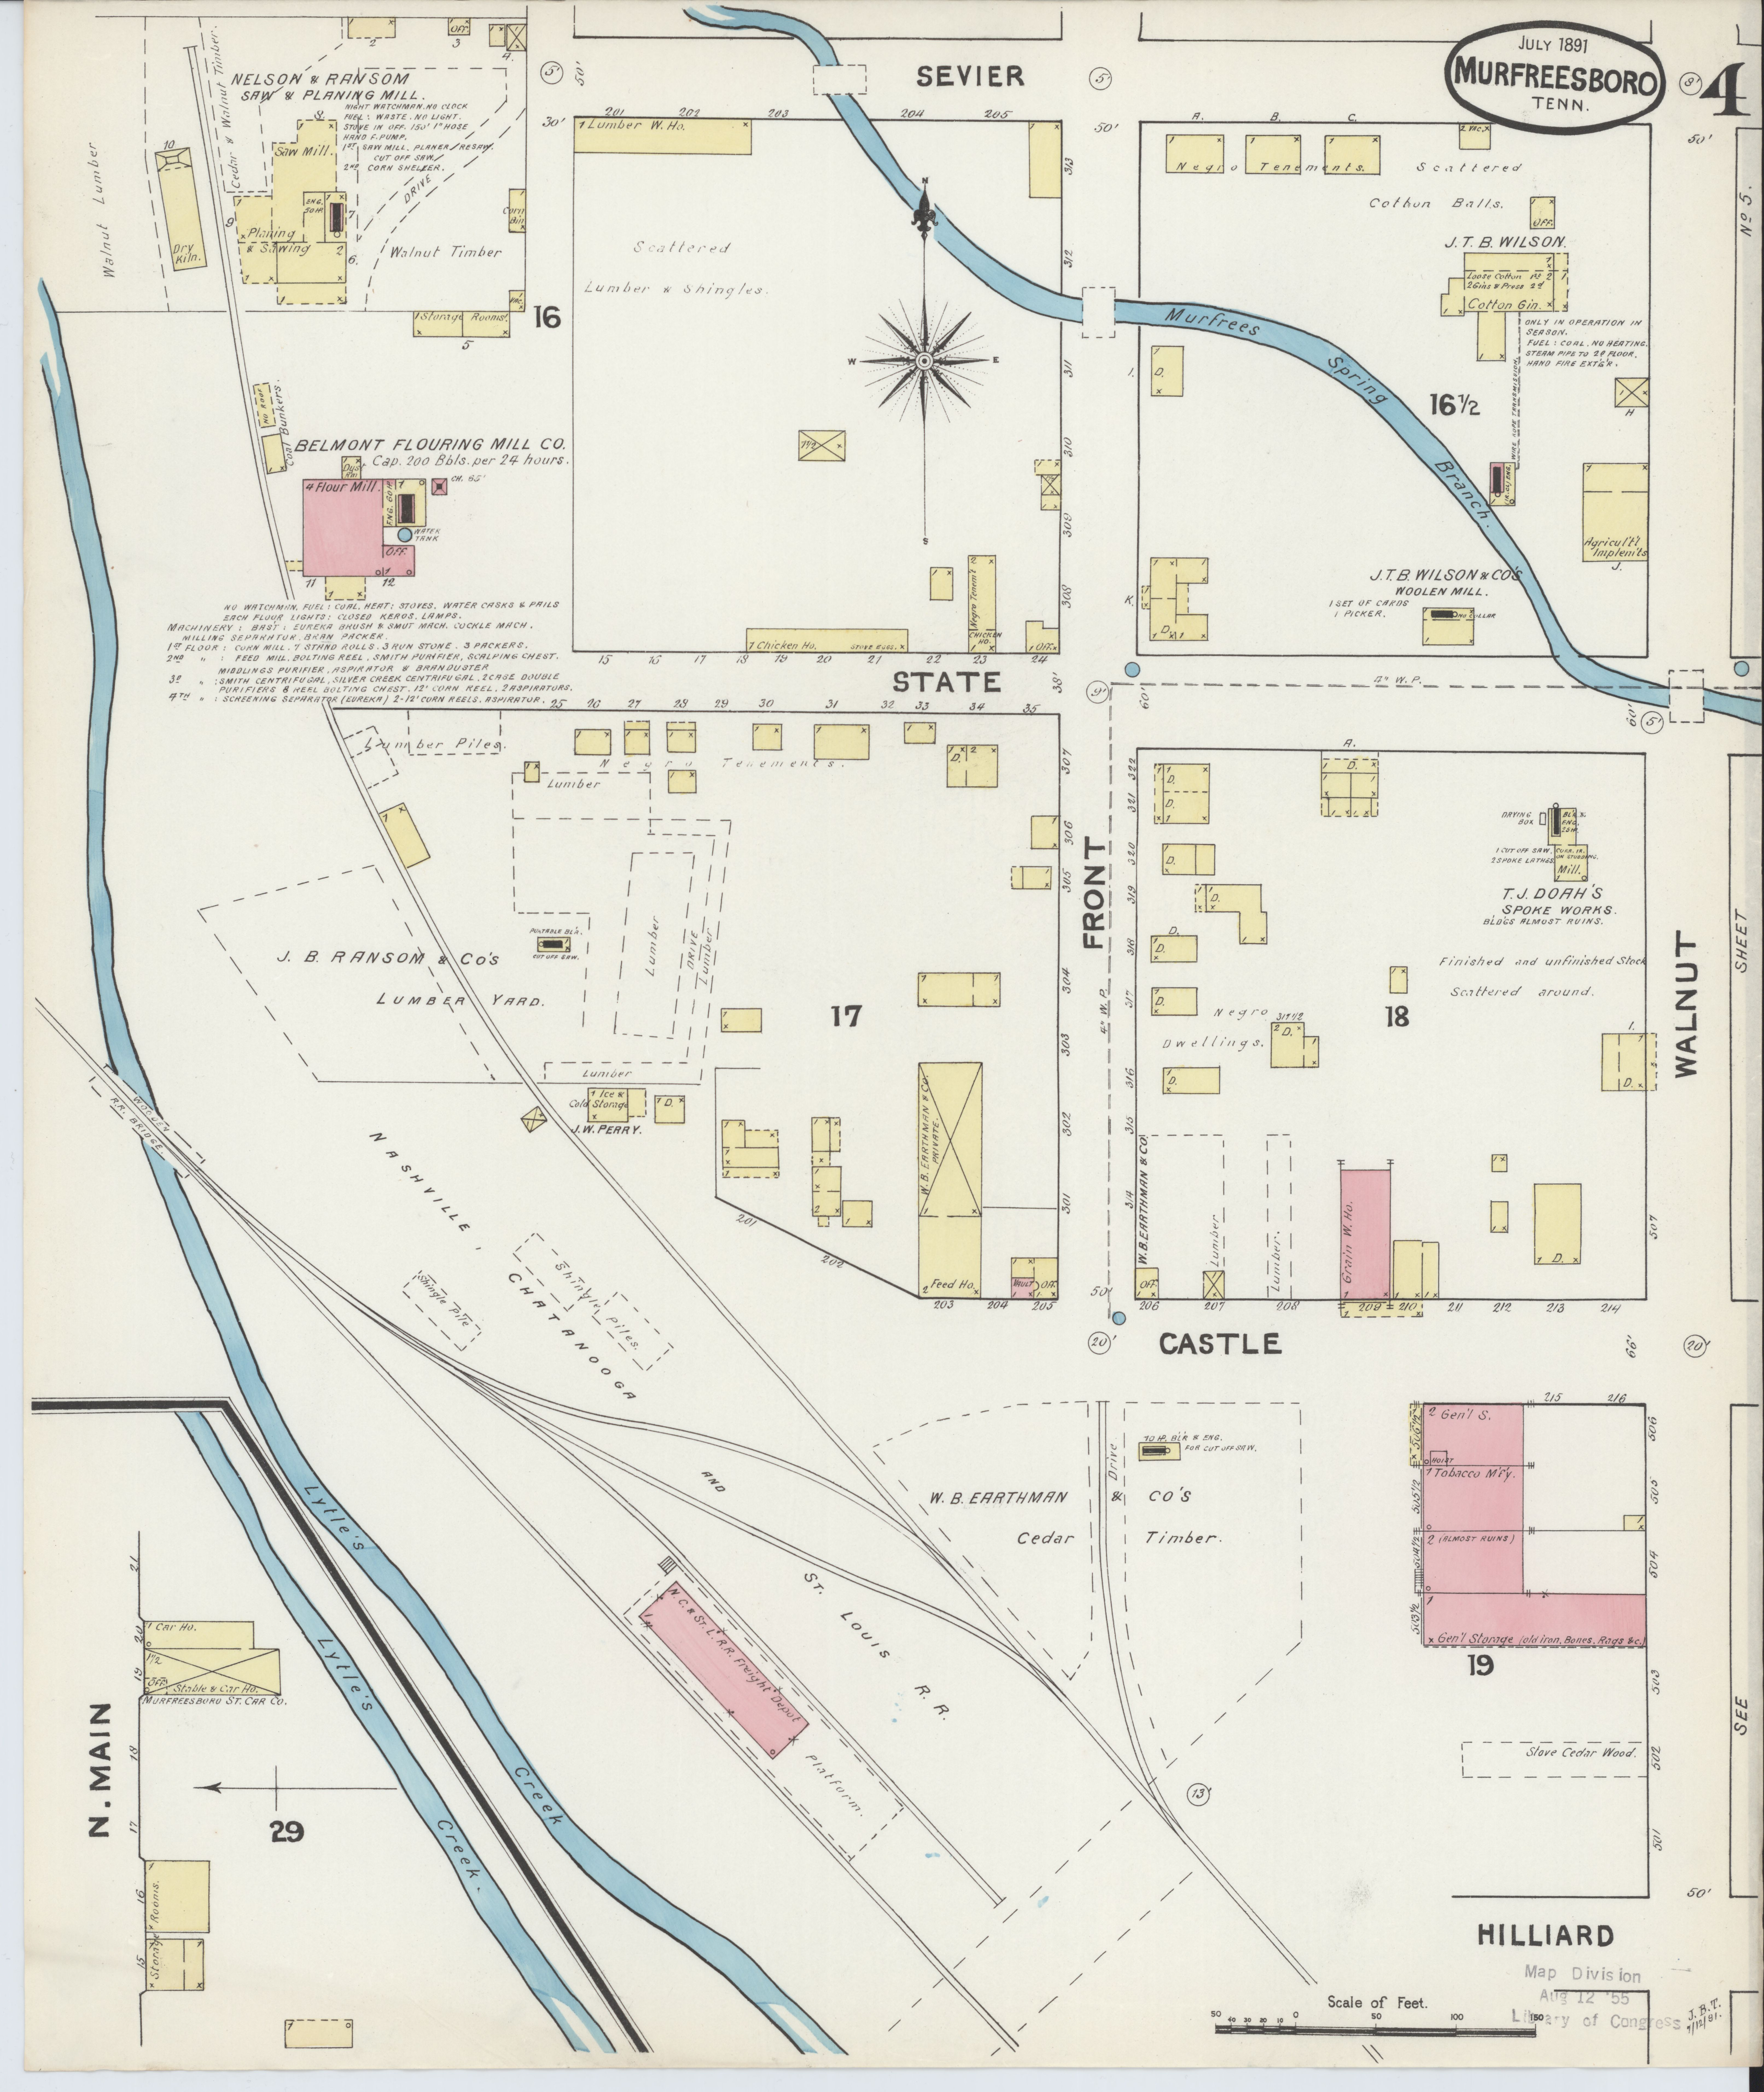 File Sanborn Fire Insurance Map From Murfreesboro Rutherford County